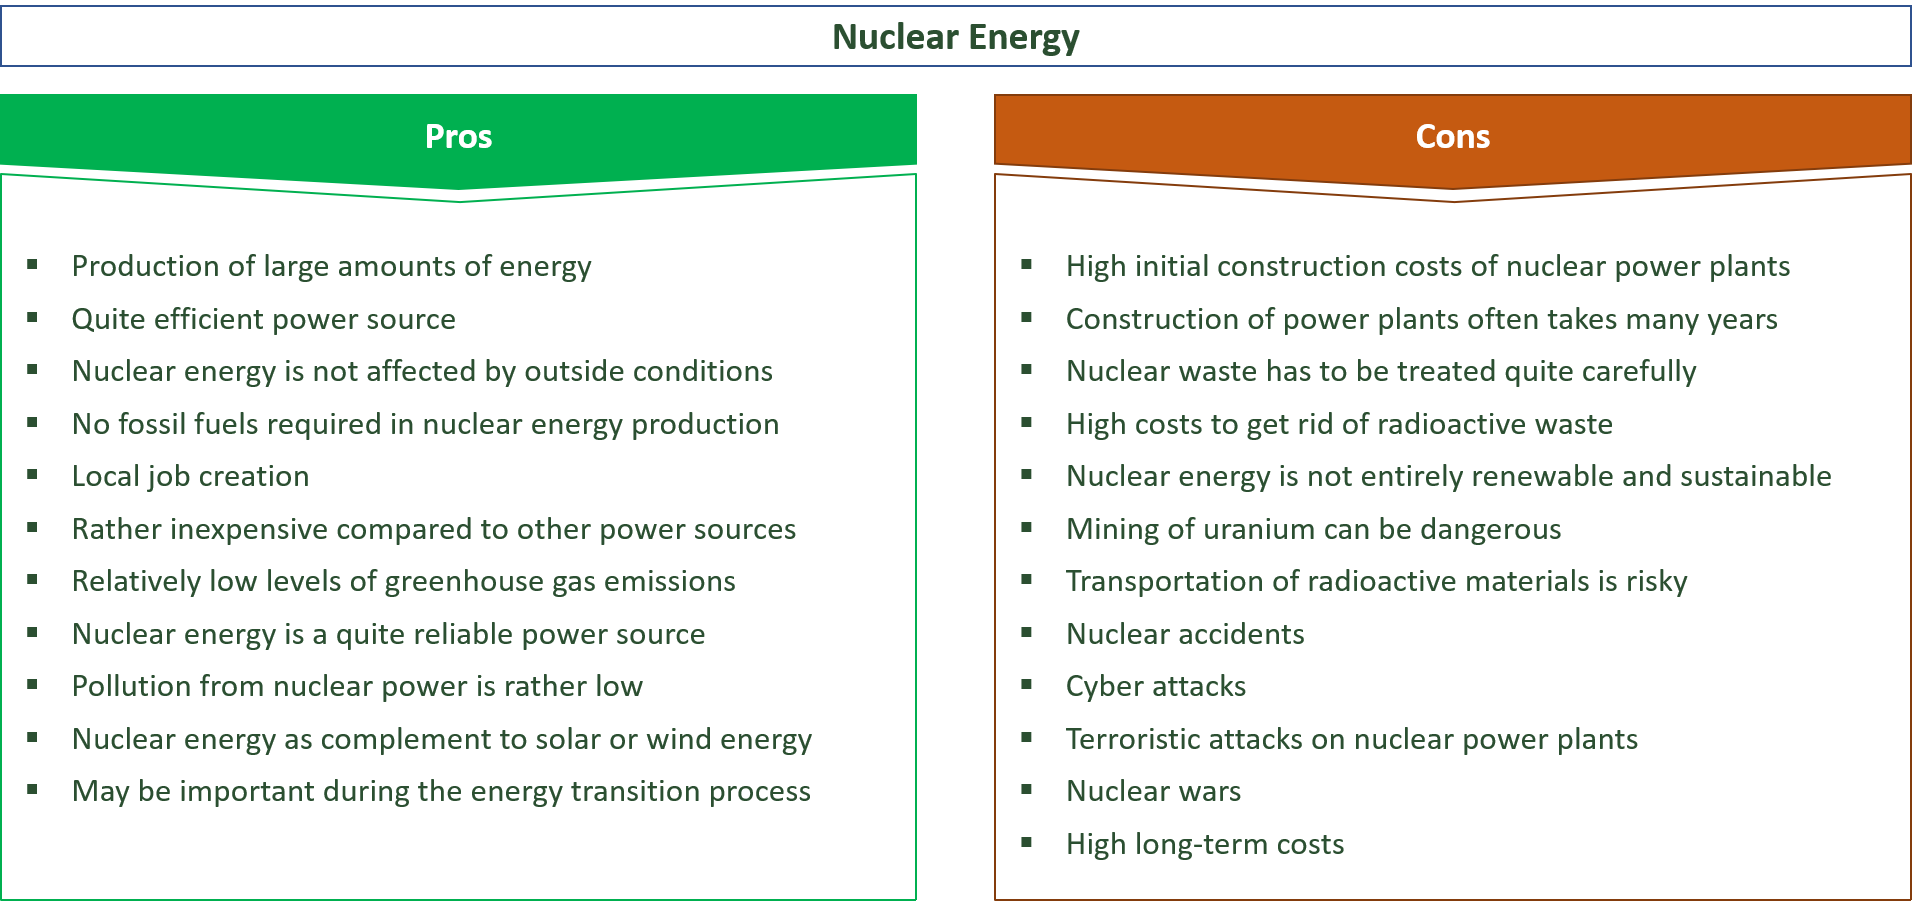 the advantages and downsides of nuclear energy